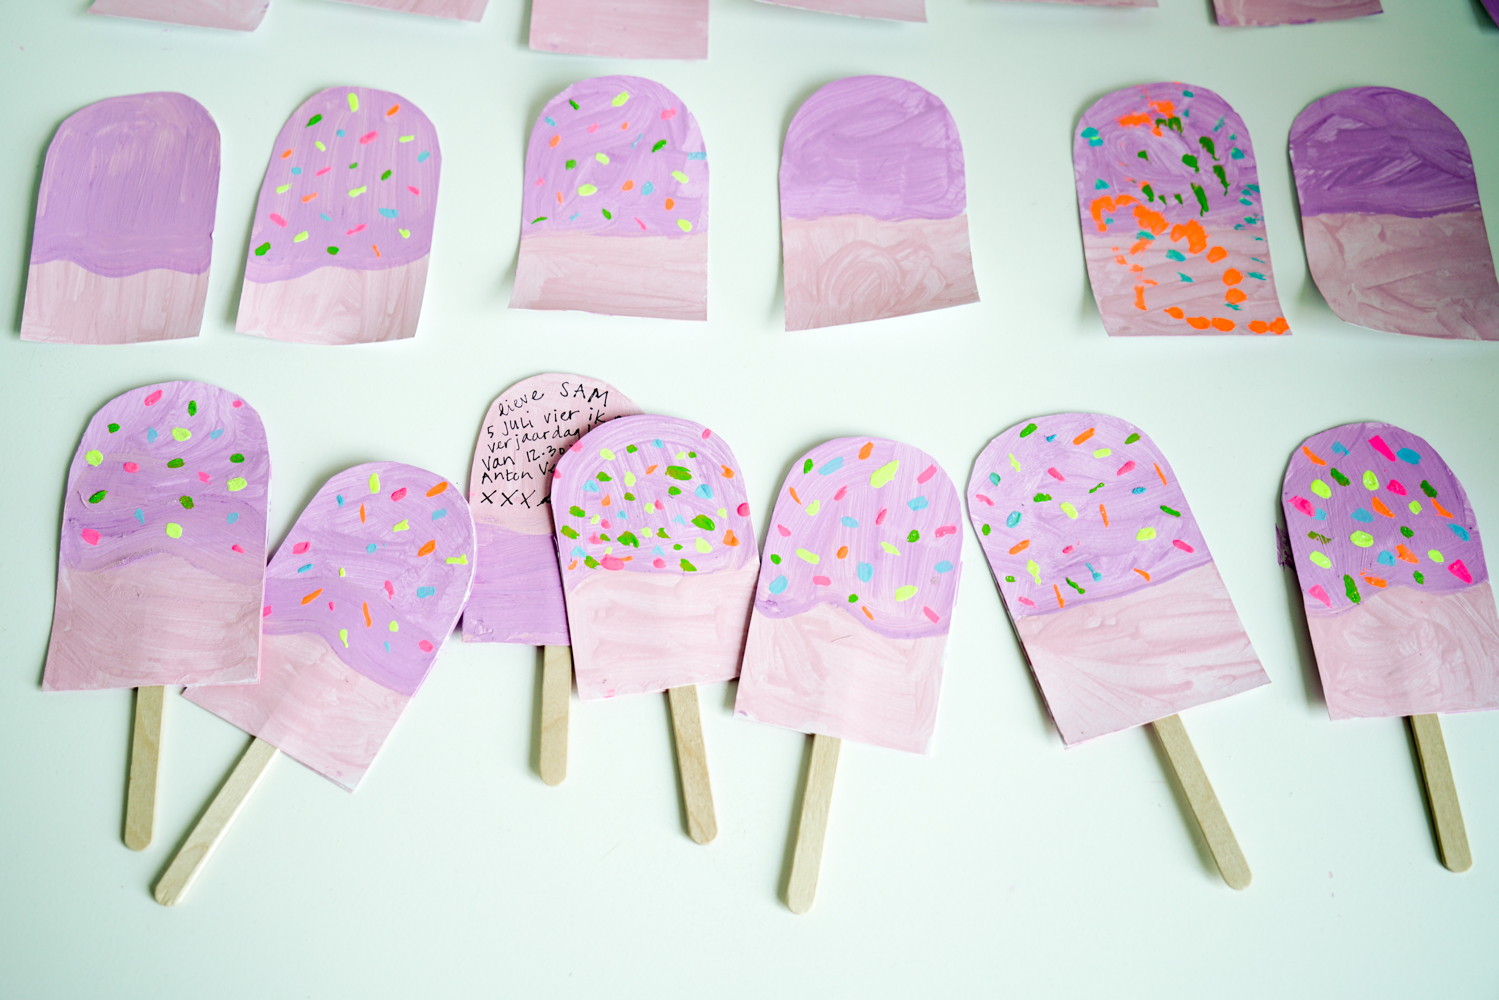 Ice-cream birthday party invitations